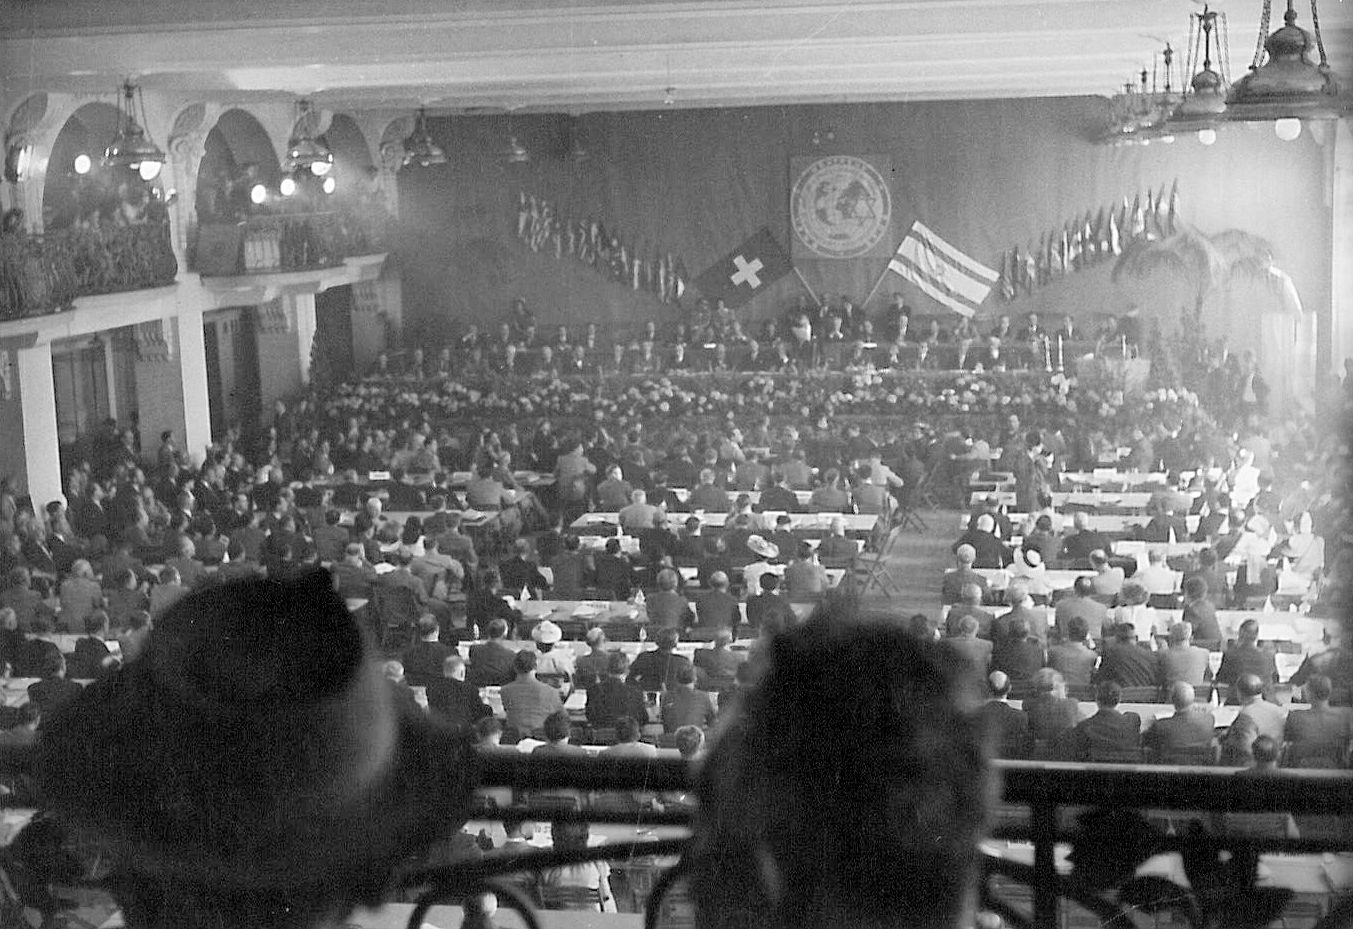 Delegates at the Second Plenary Assembly of the World Jewish Congress in Montreux, Switzerland, June 28, 1948.